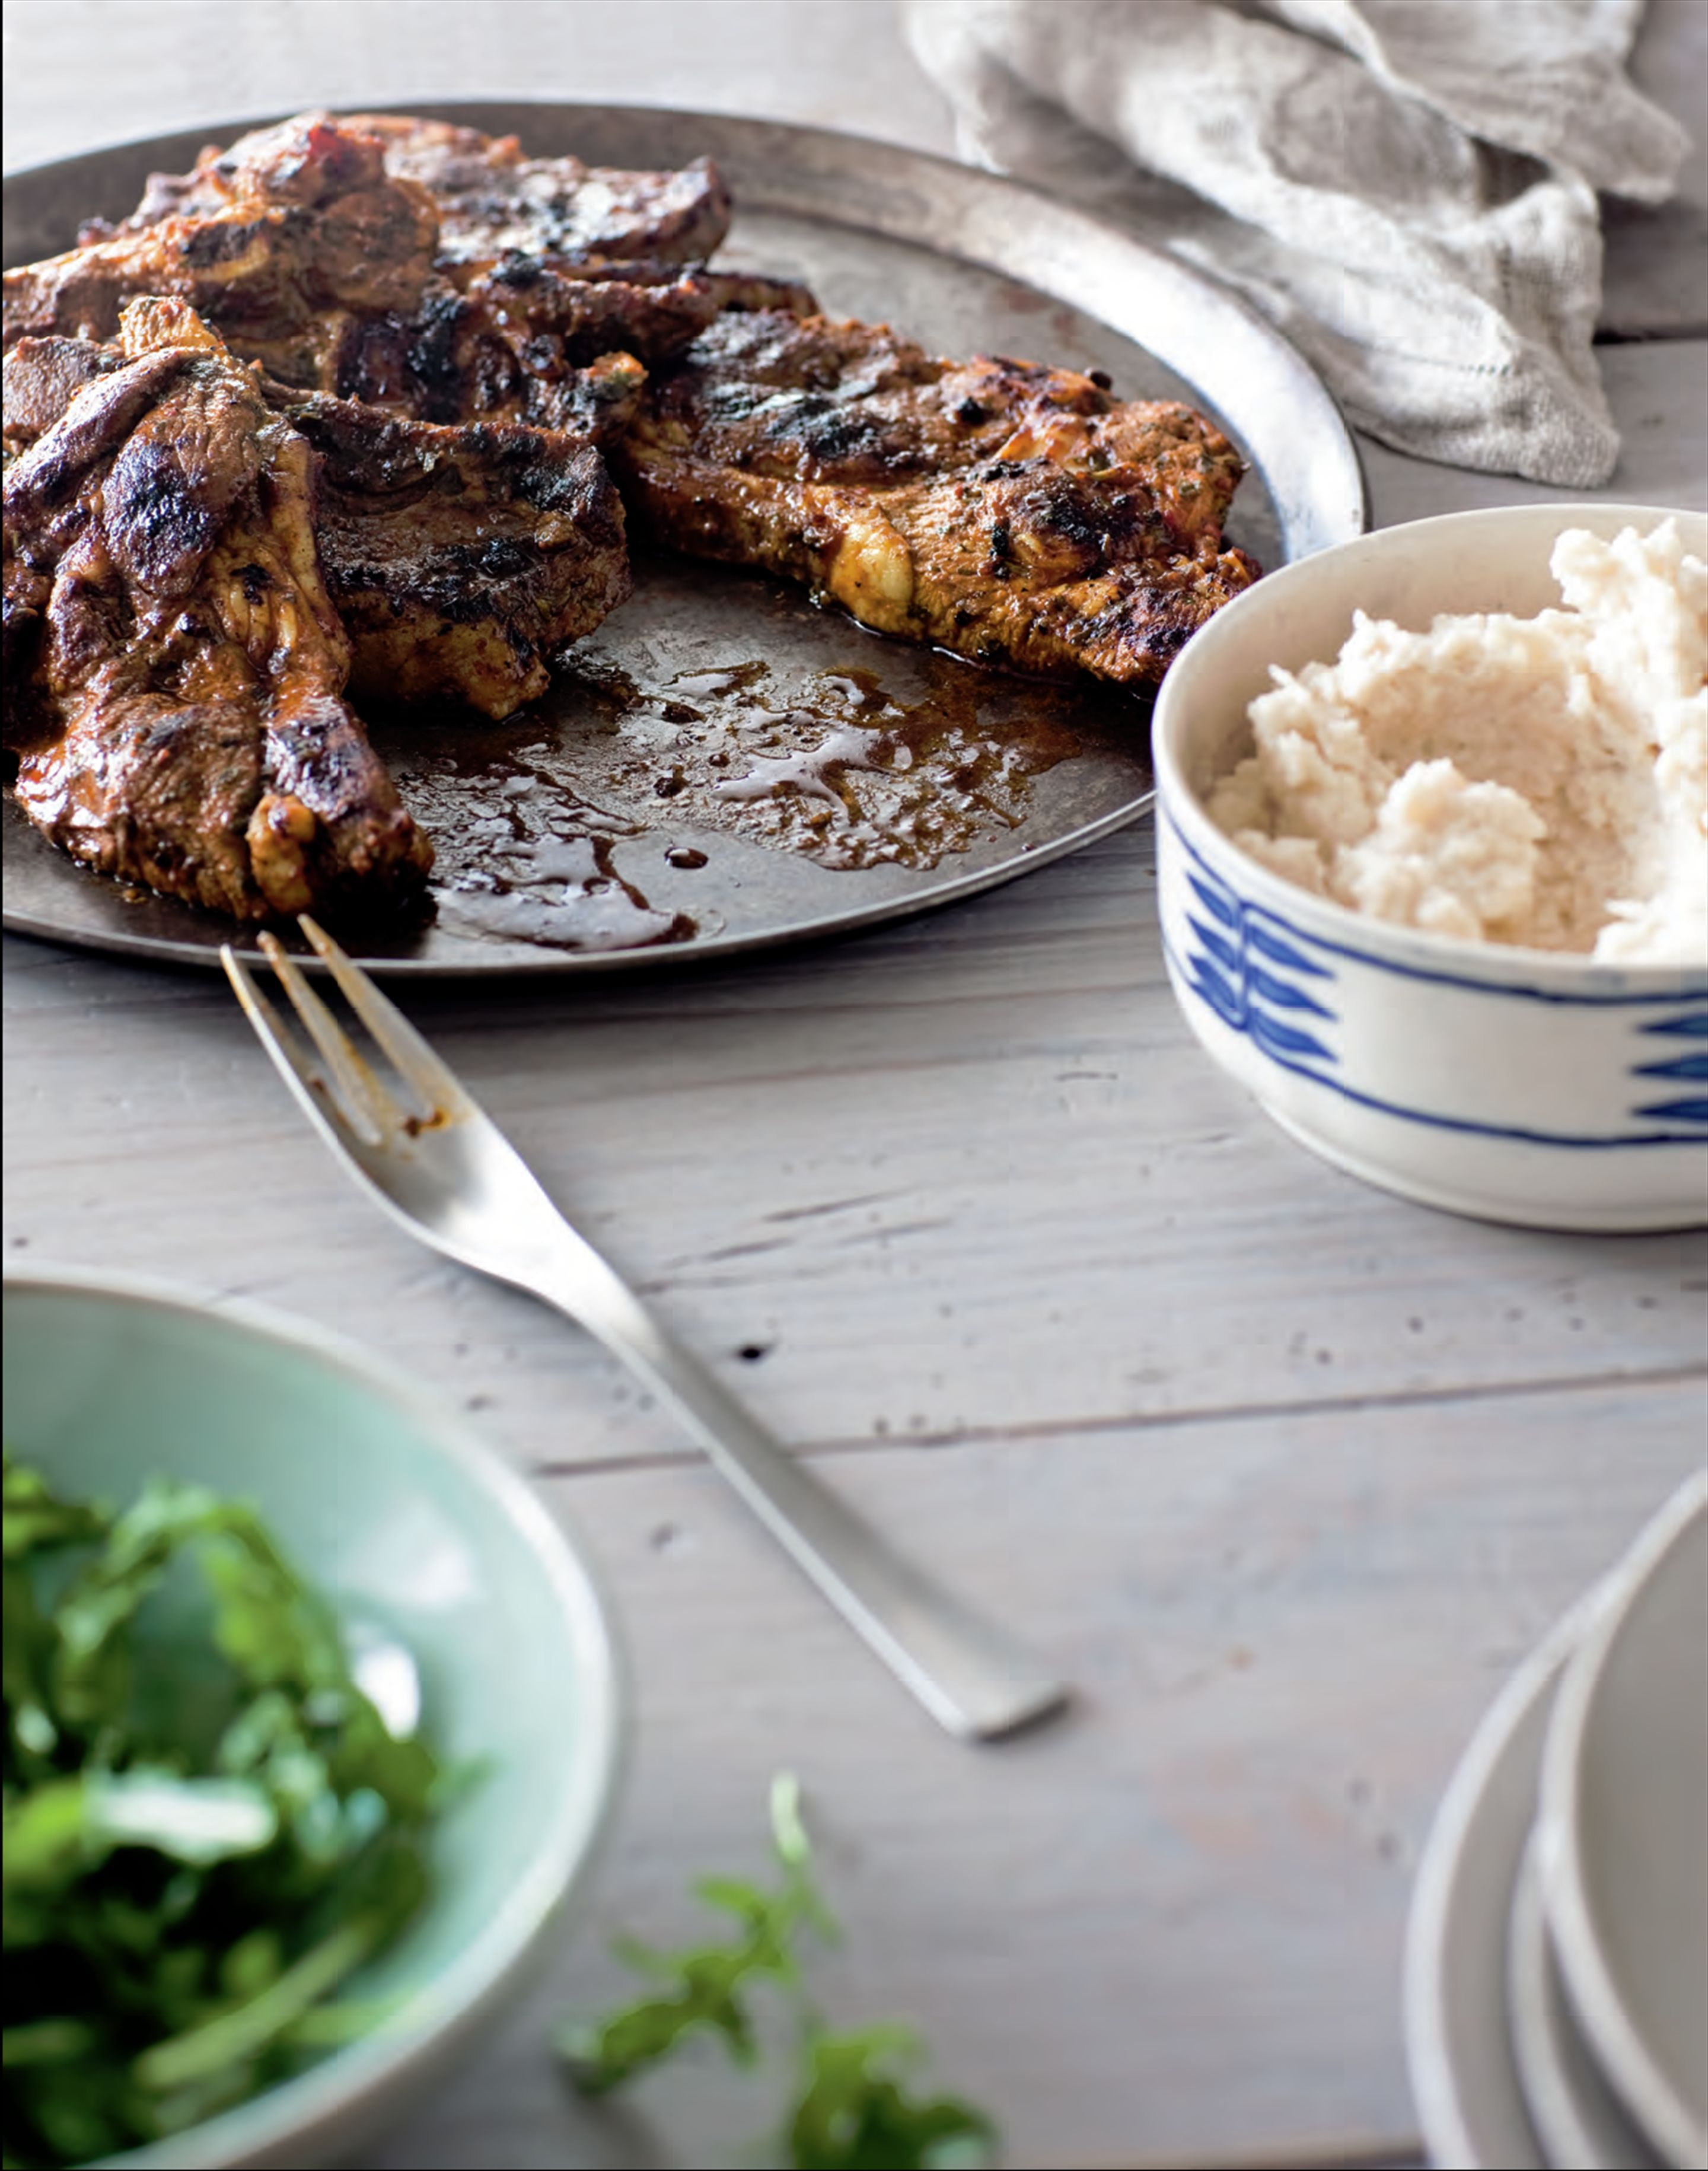 Lamb steaks with herbs and harissa